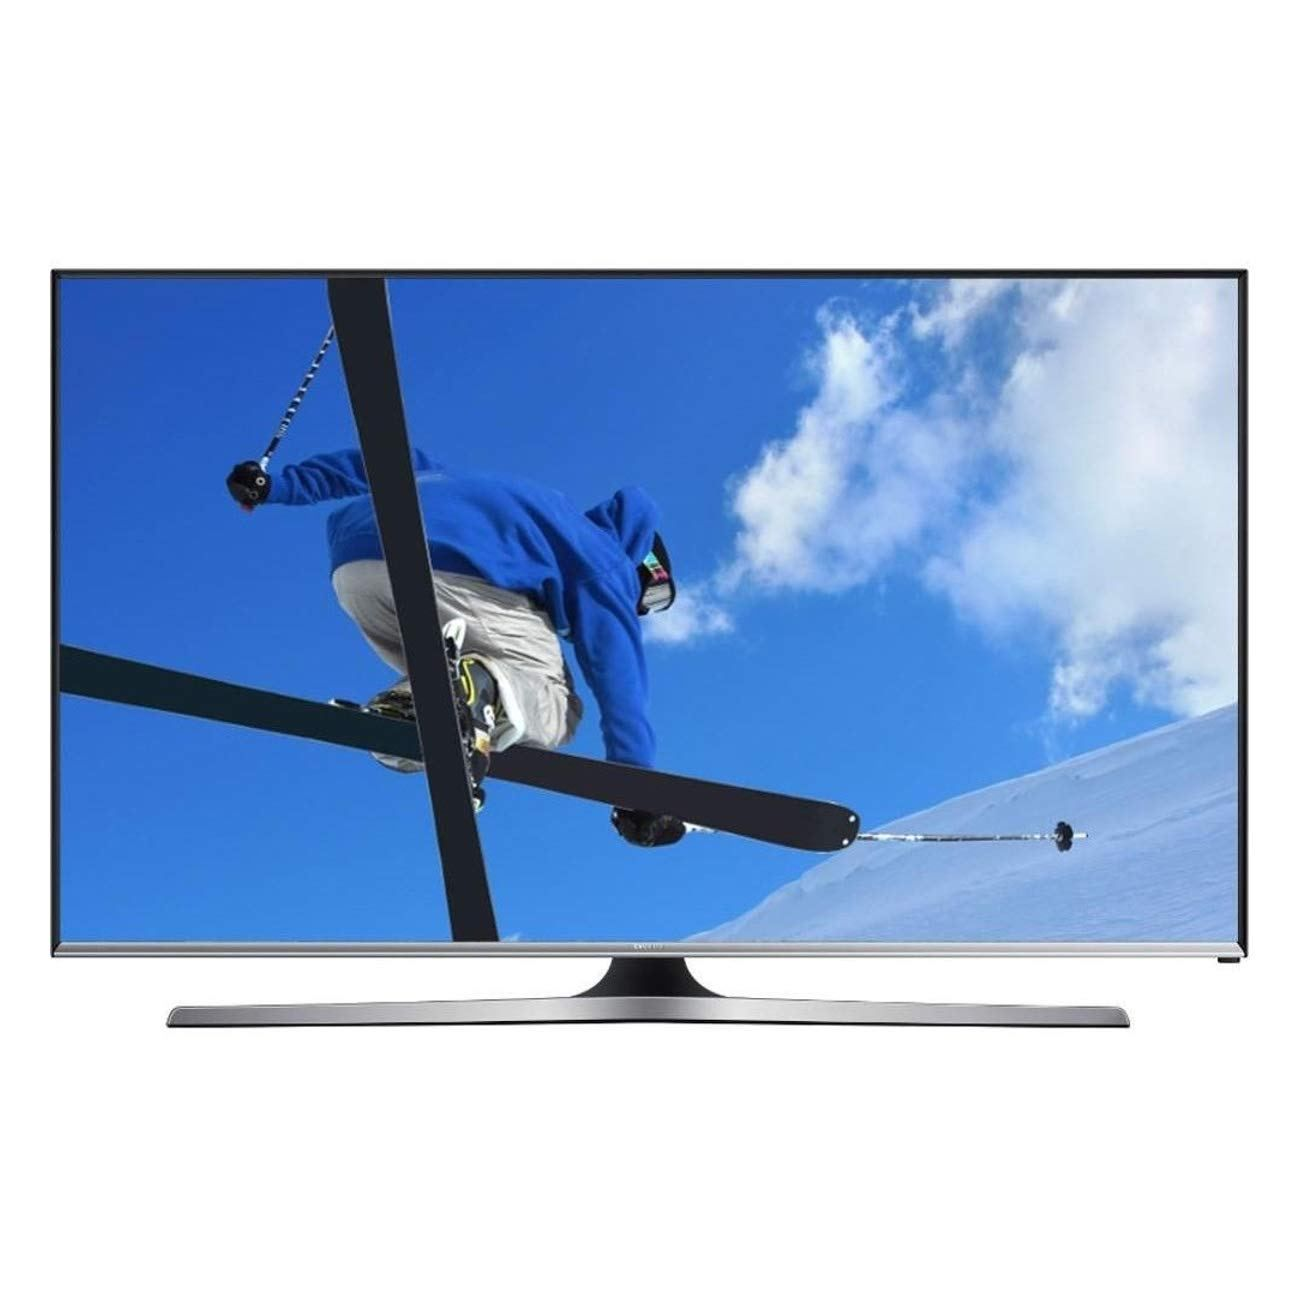 Samsung T32e390sx 32 Smart Led Fhd Tv Full Hd 1080p 400 Hz Processing Rate Access Content On Netflix Tuner Freeview Hd Led Tv Television Smart Tv